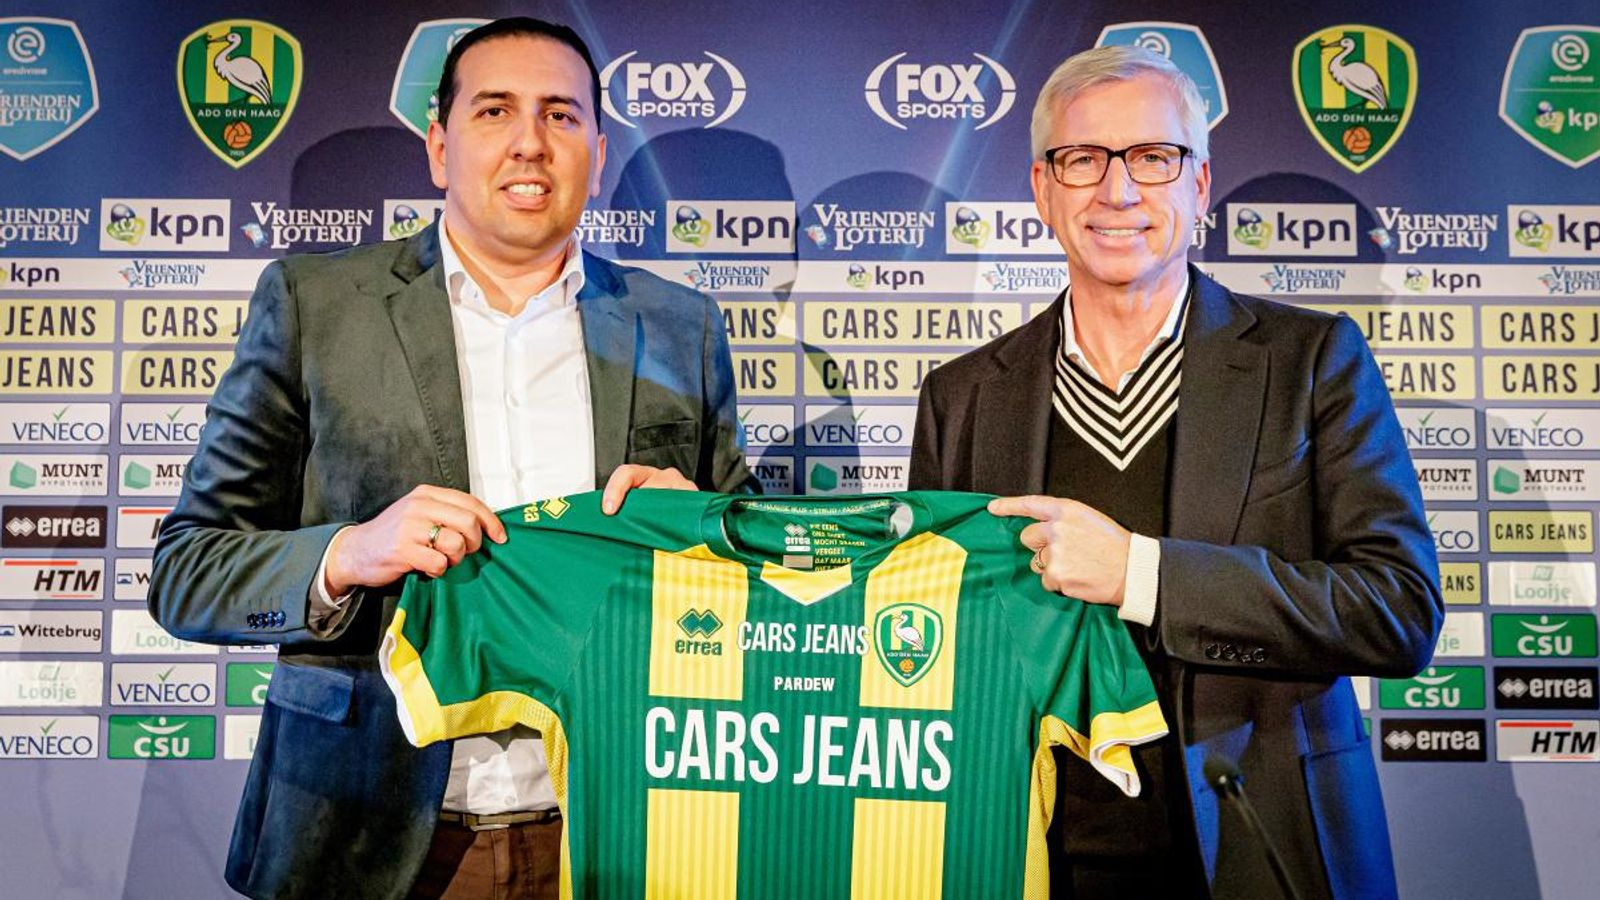 Alan Pardew S Ado Den Haag Set To Partner With Chinese Super League Side Tianjin Tianhai Football News The Union Journal